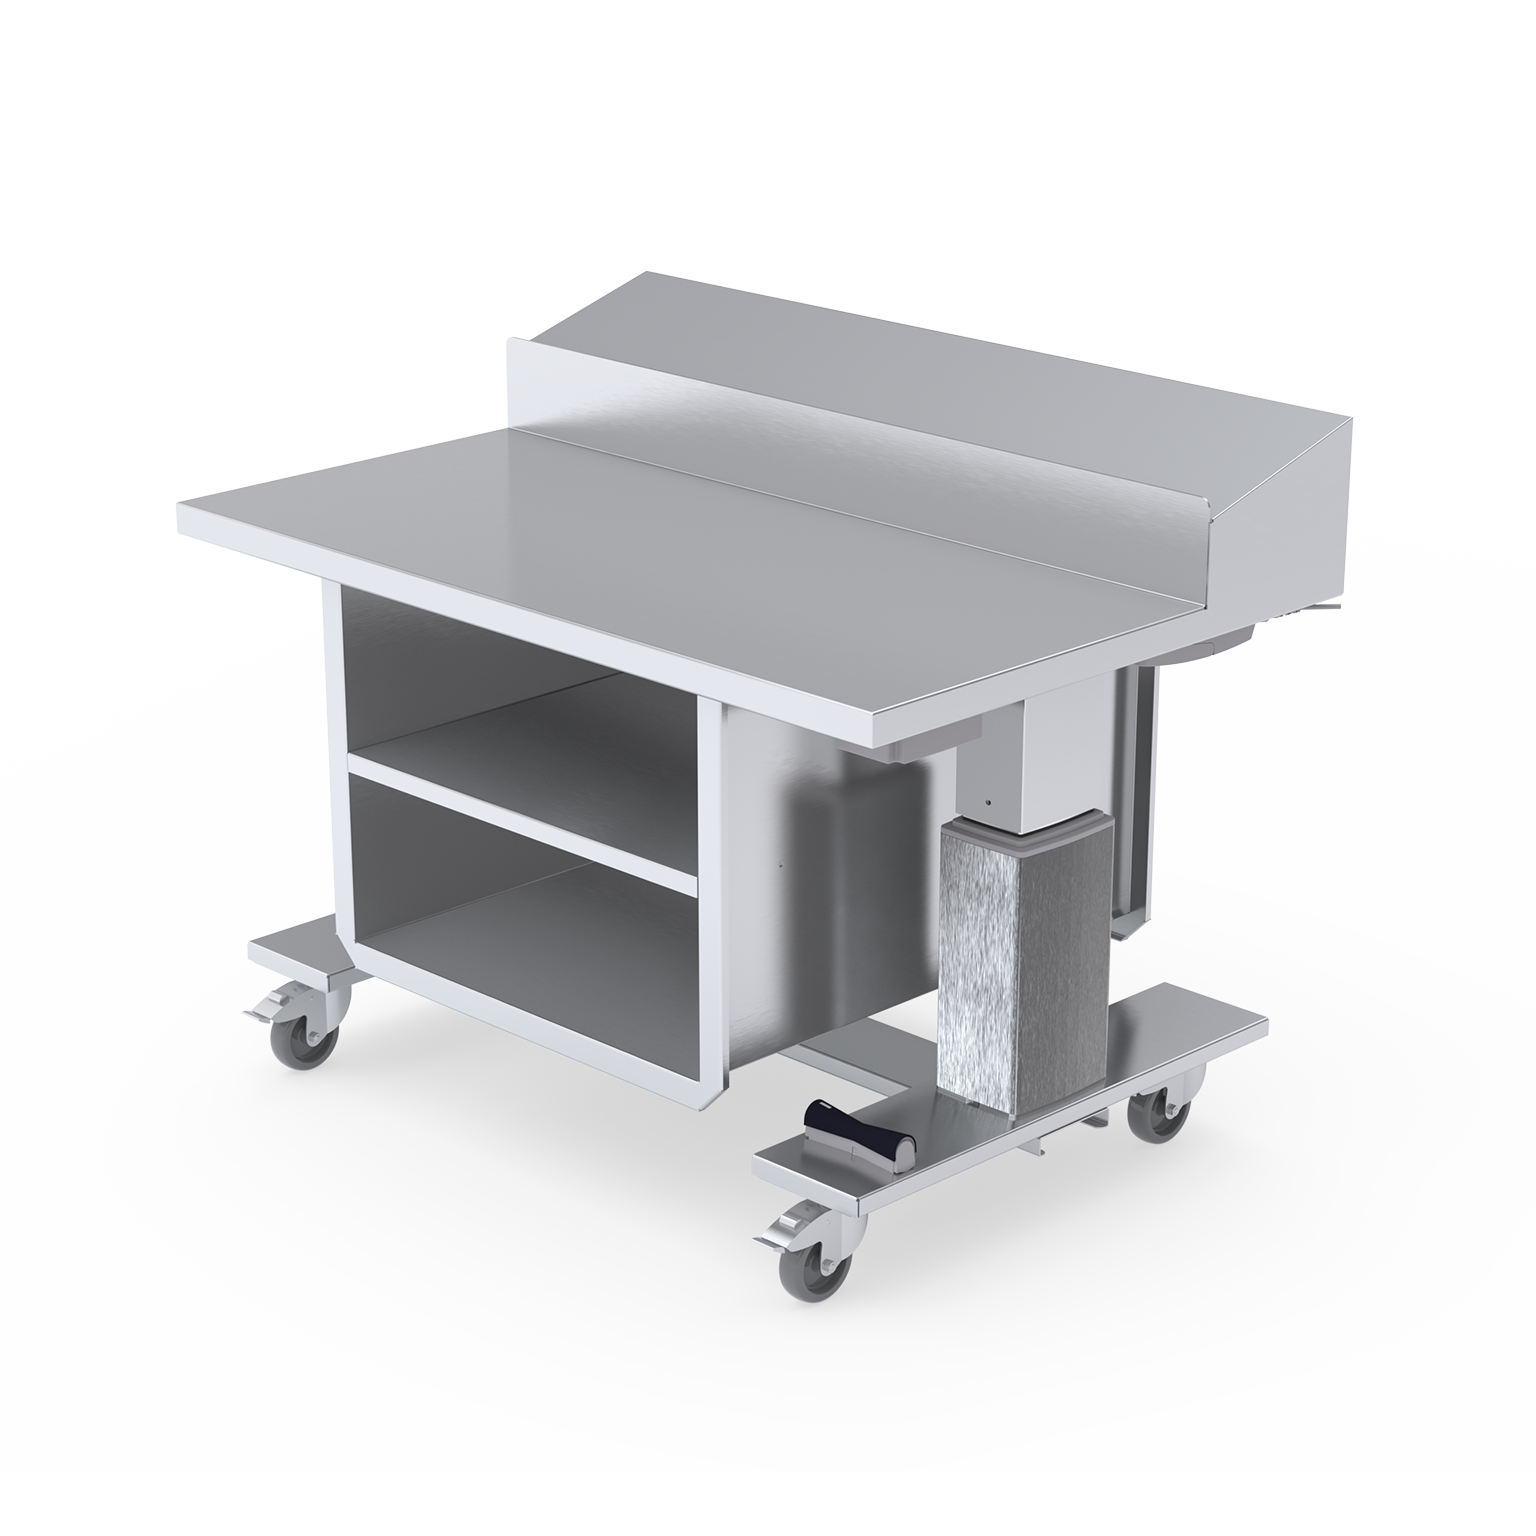 T0-6000 and T0-7000 adjustable instrument tables for the operating room